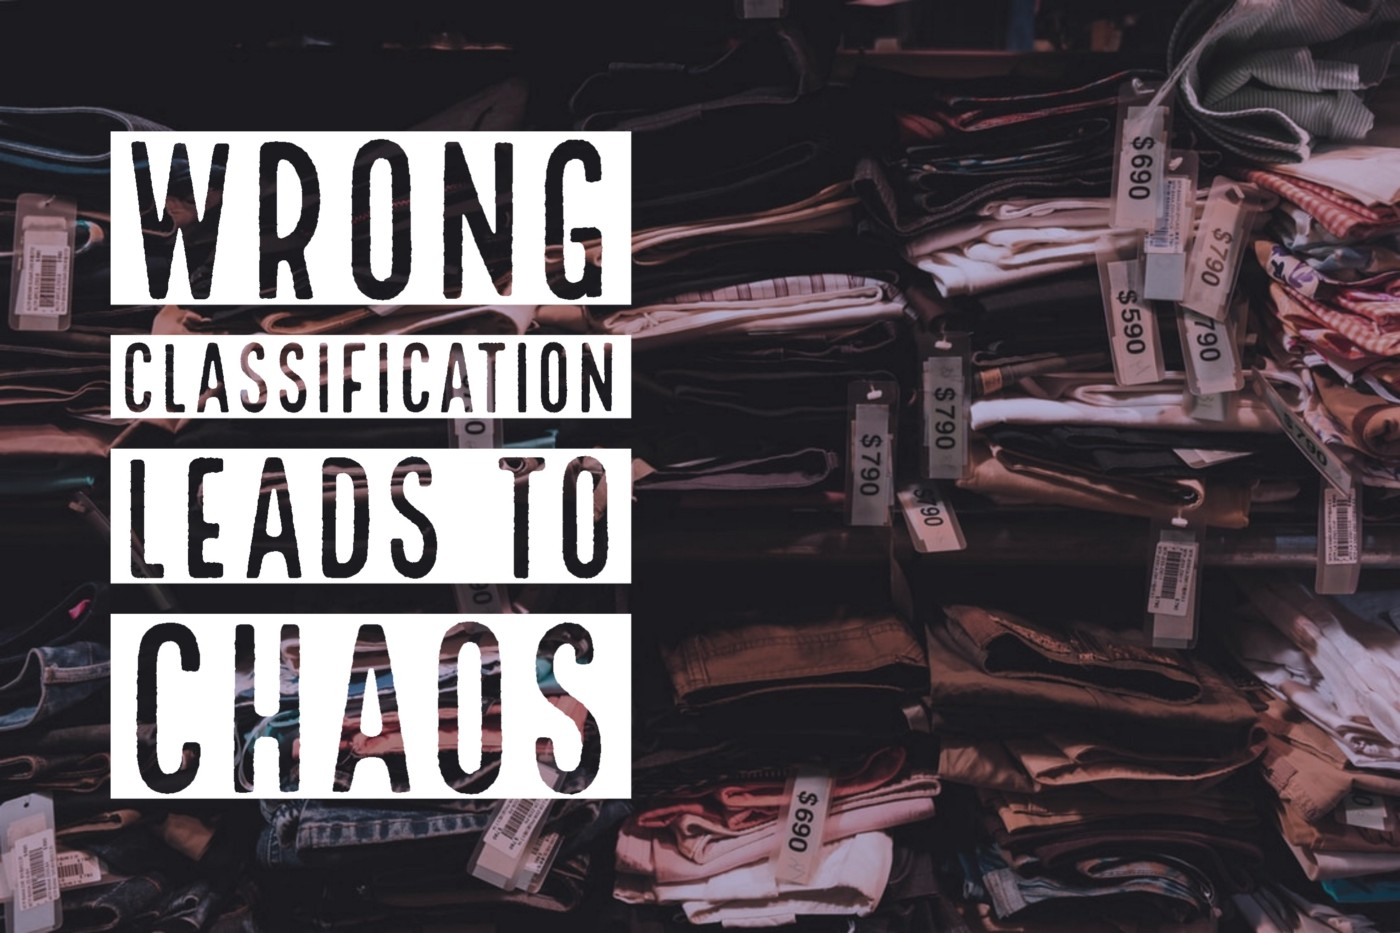 Wrong classification leads to chaos